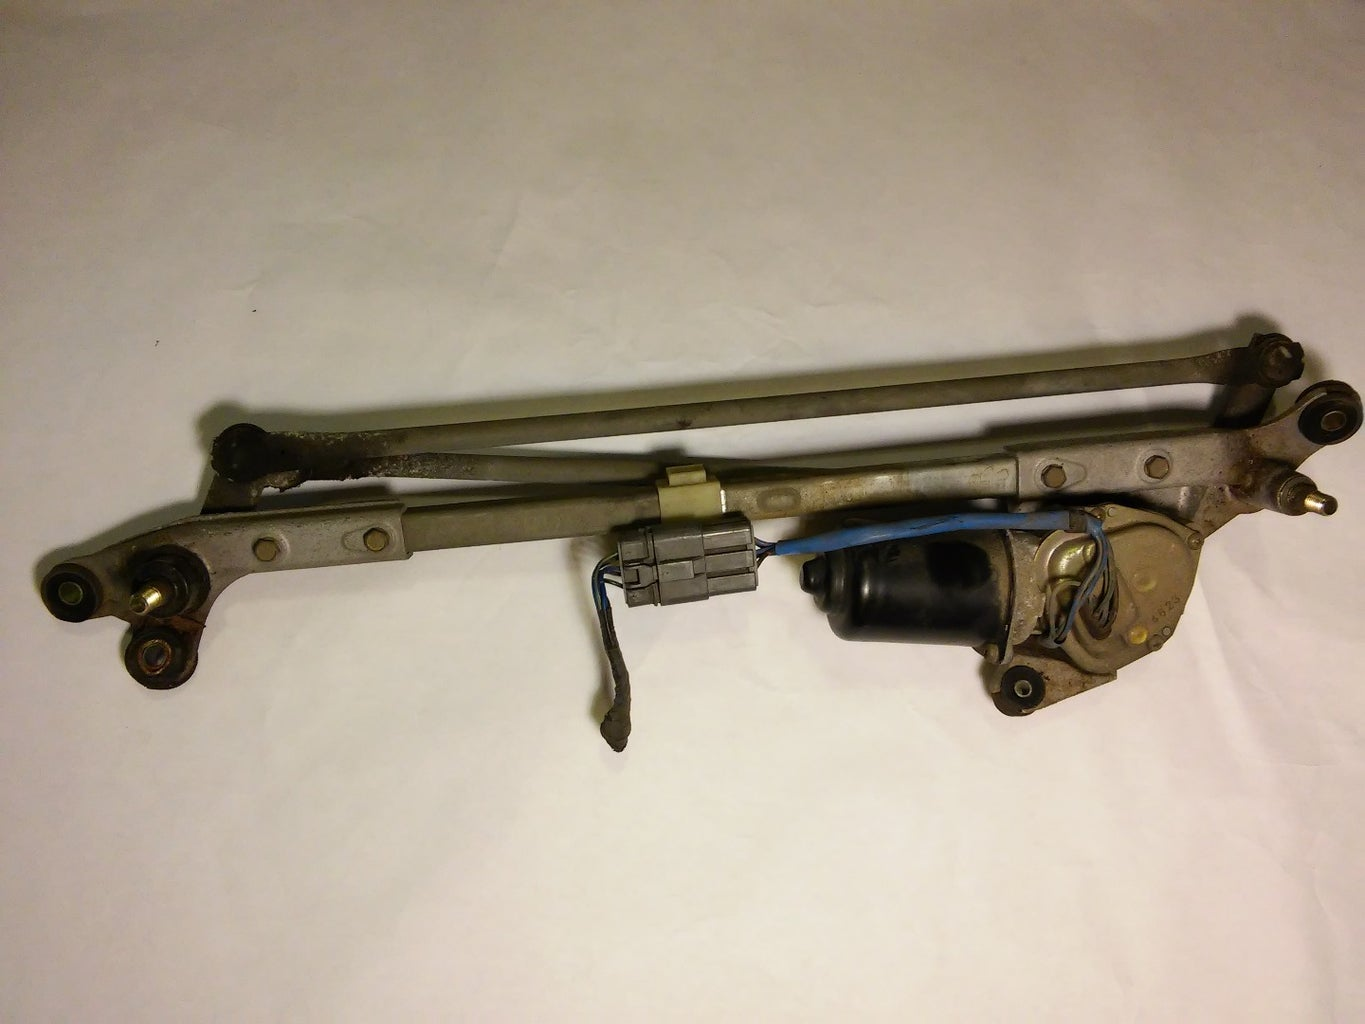 Harvest Windshield Wiper and Motor